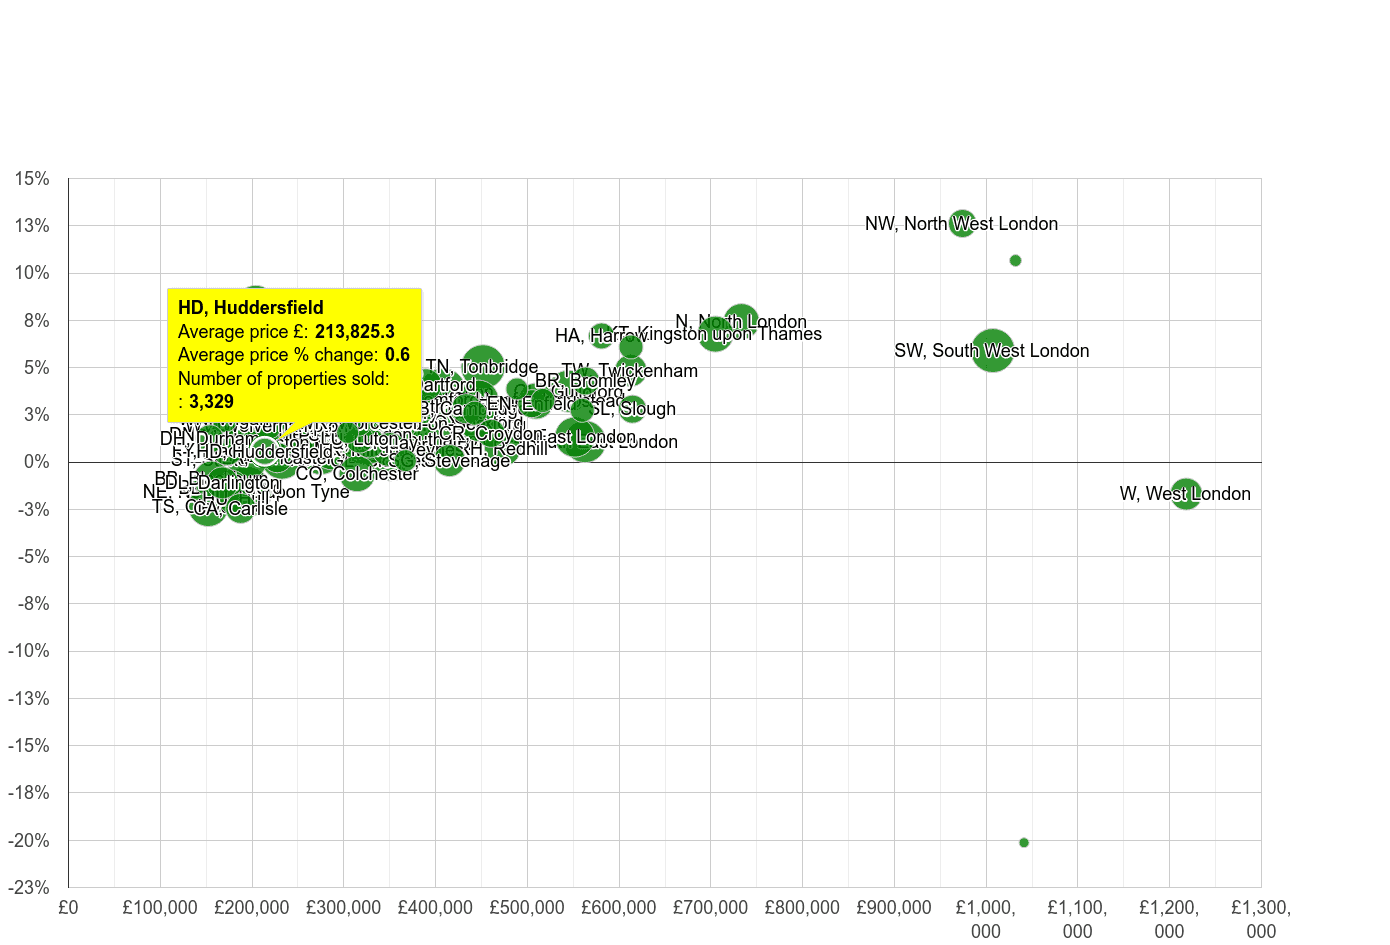 Huddersfield house prices compared to other areas